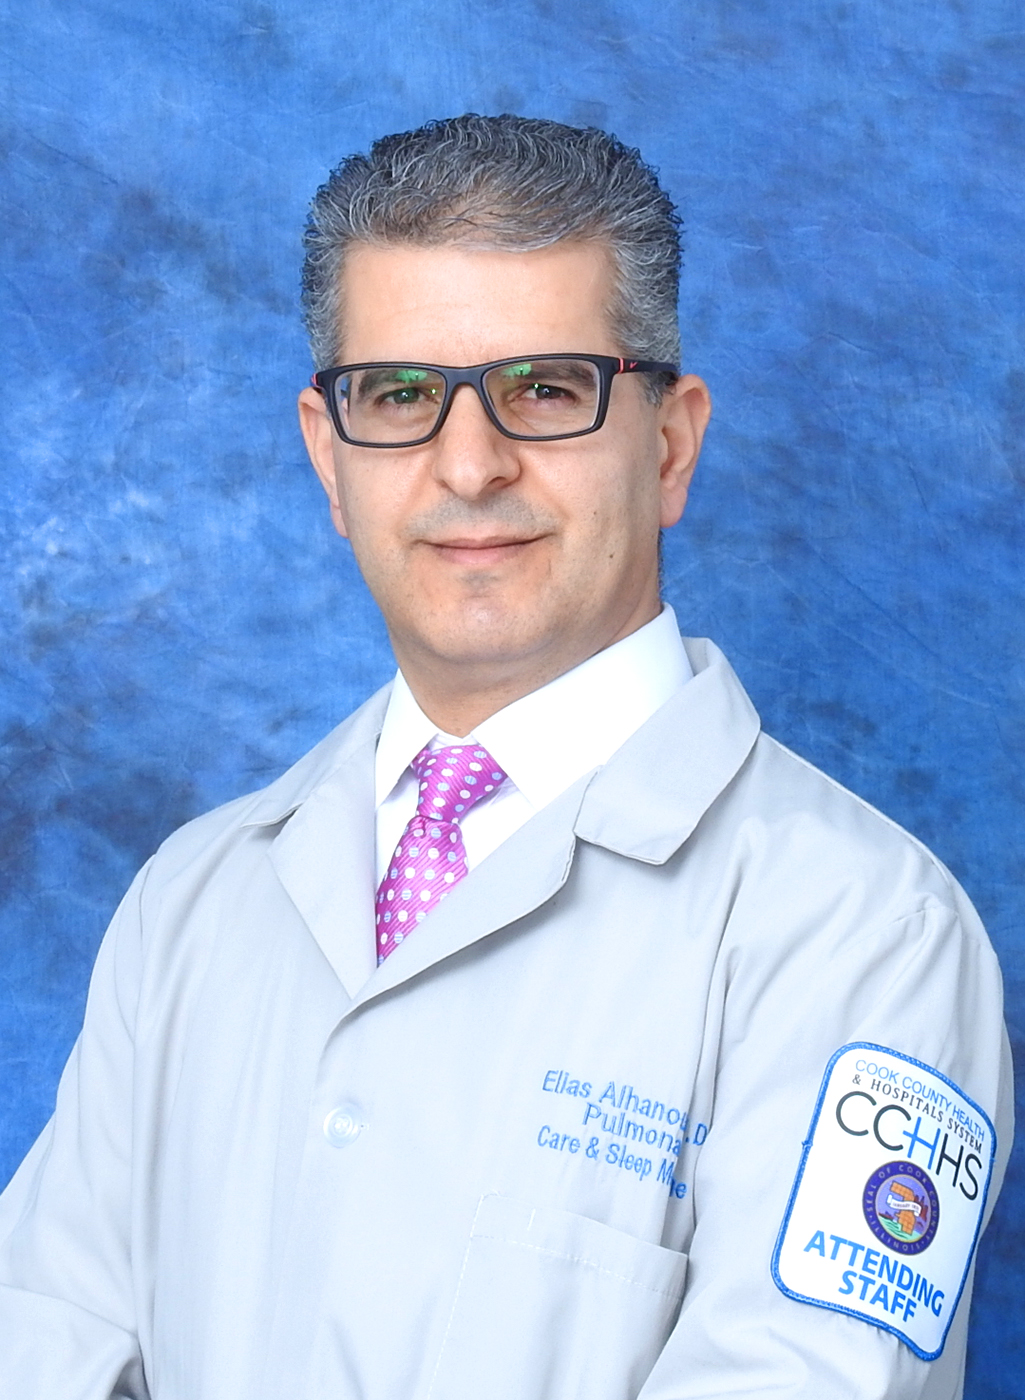 Elias Alhanoun, MD